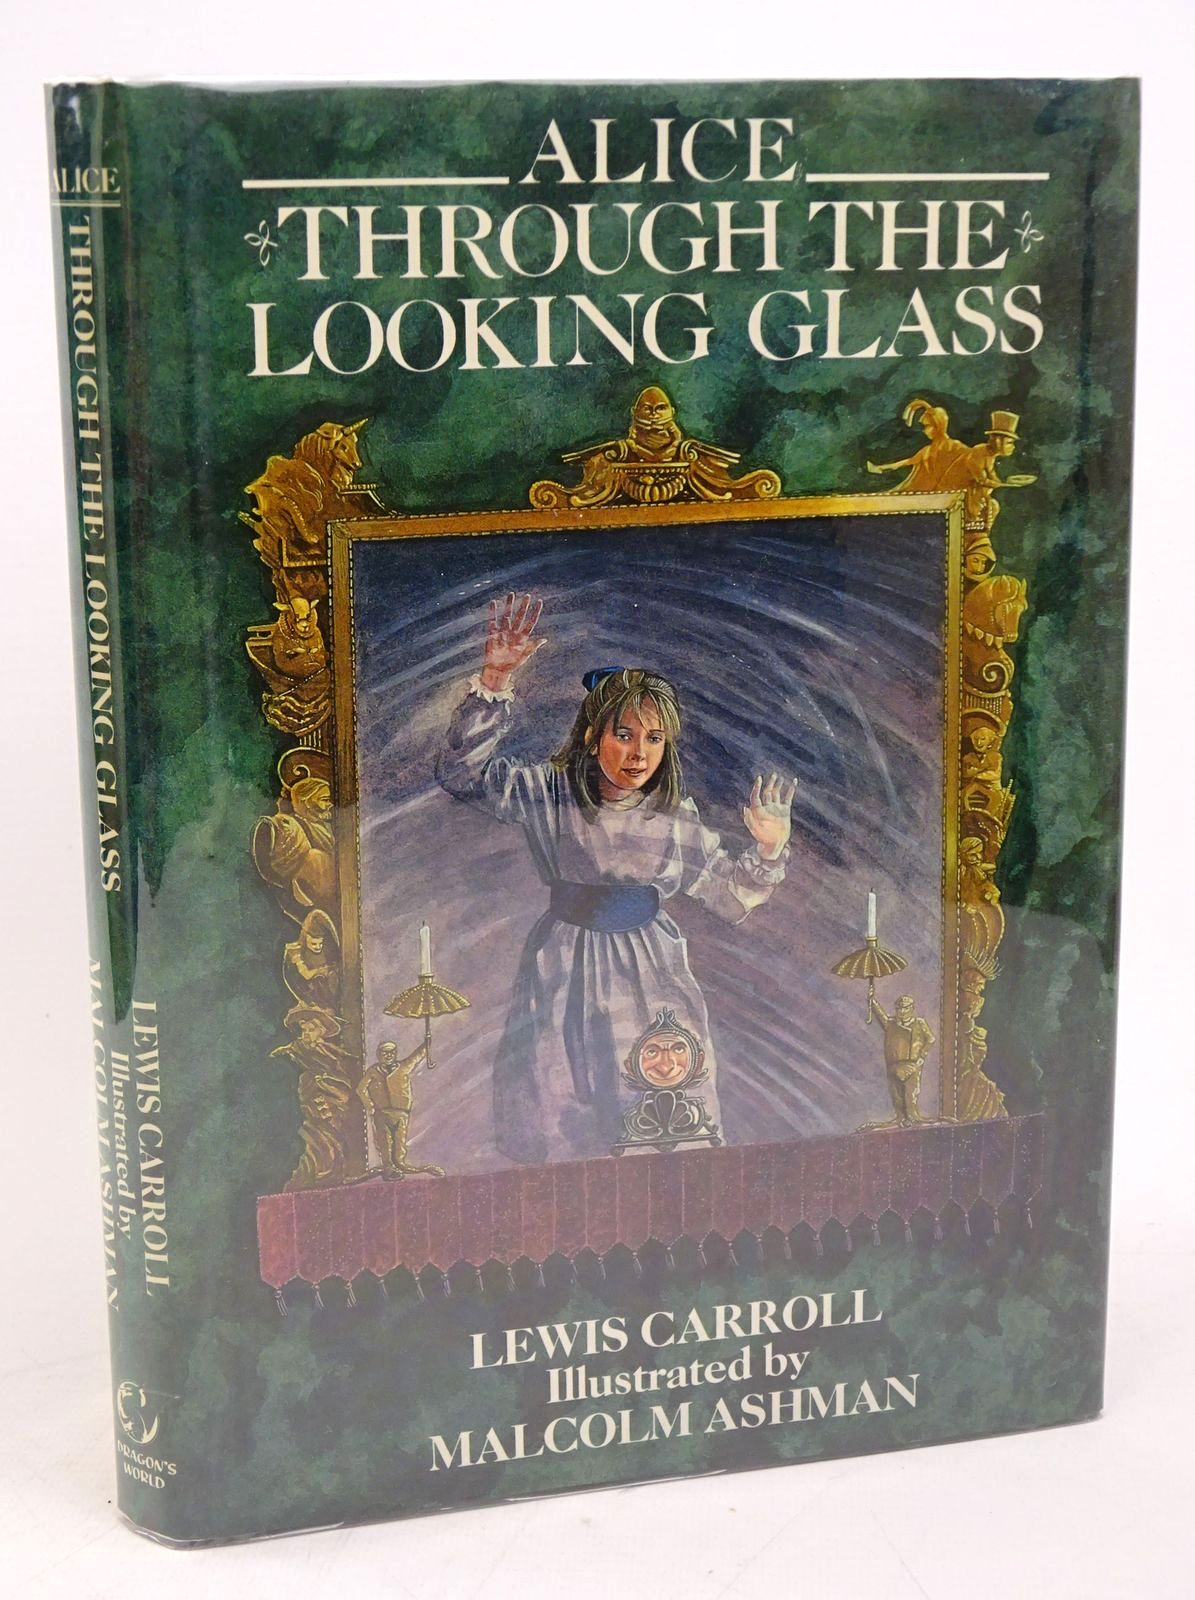 Photo of ALICE THROUGH THE LOOKING GLASS written by Carroll, Lewis illustrated by Ashman, Malcolm published by Dragon's World (STOCK CODE: 1317846)  for sale by Stella & Rose's Books